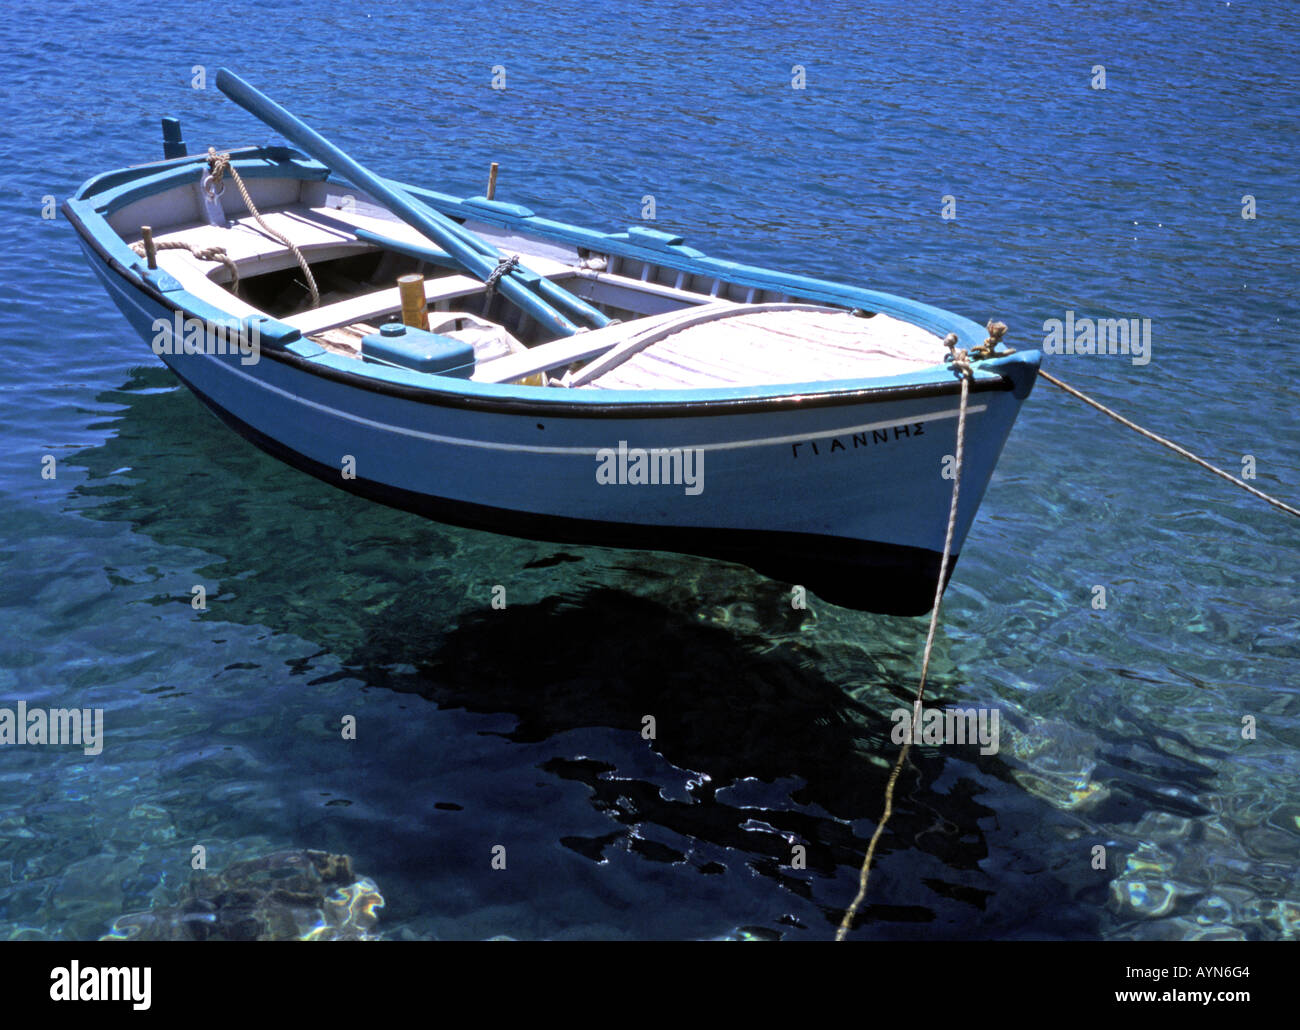 Rowing boat on the blue sea - Stock Image